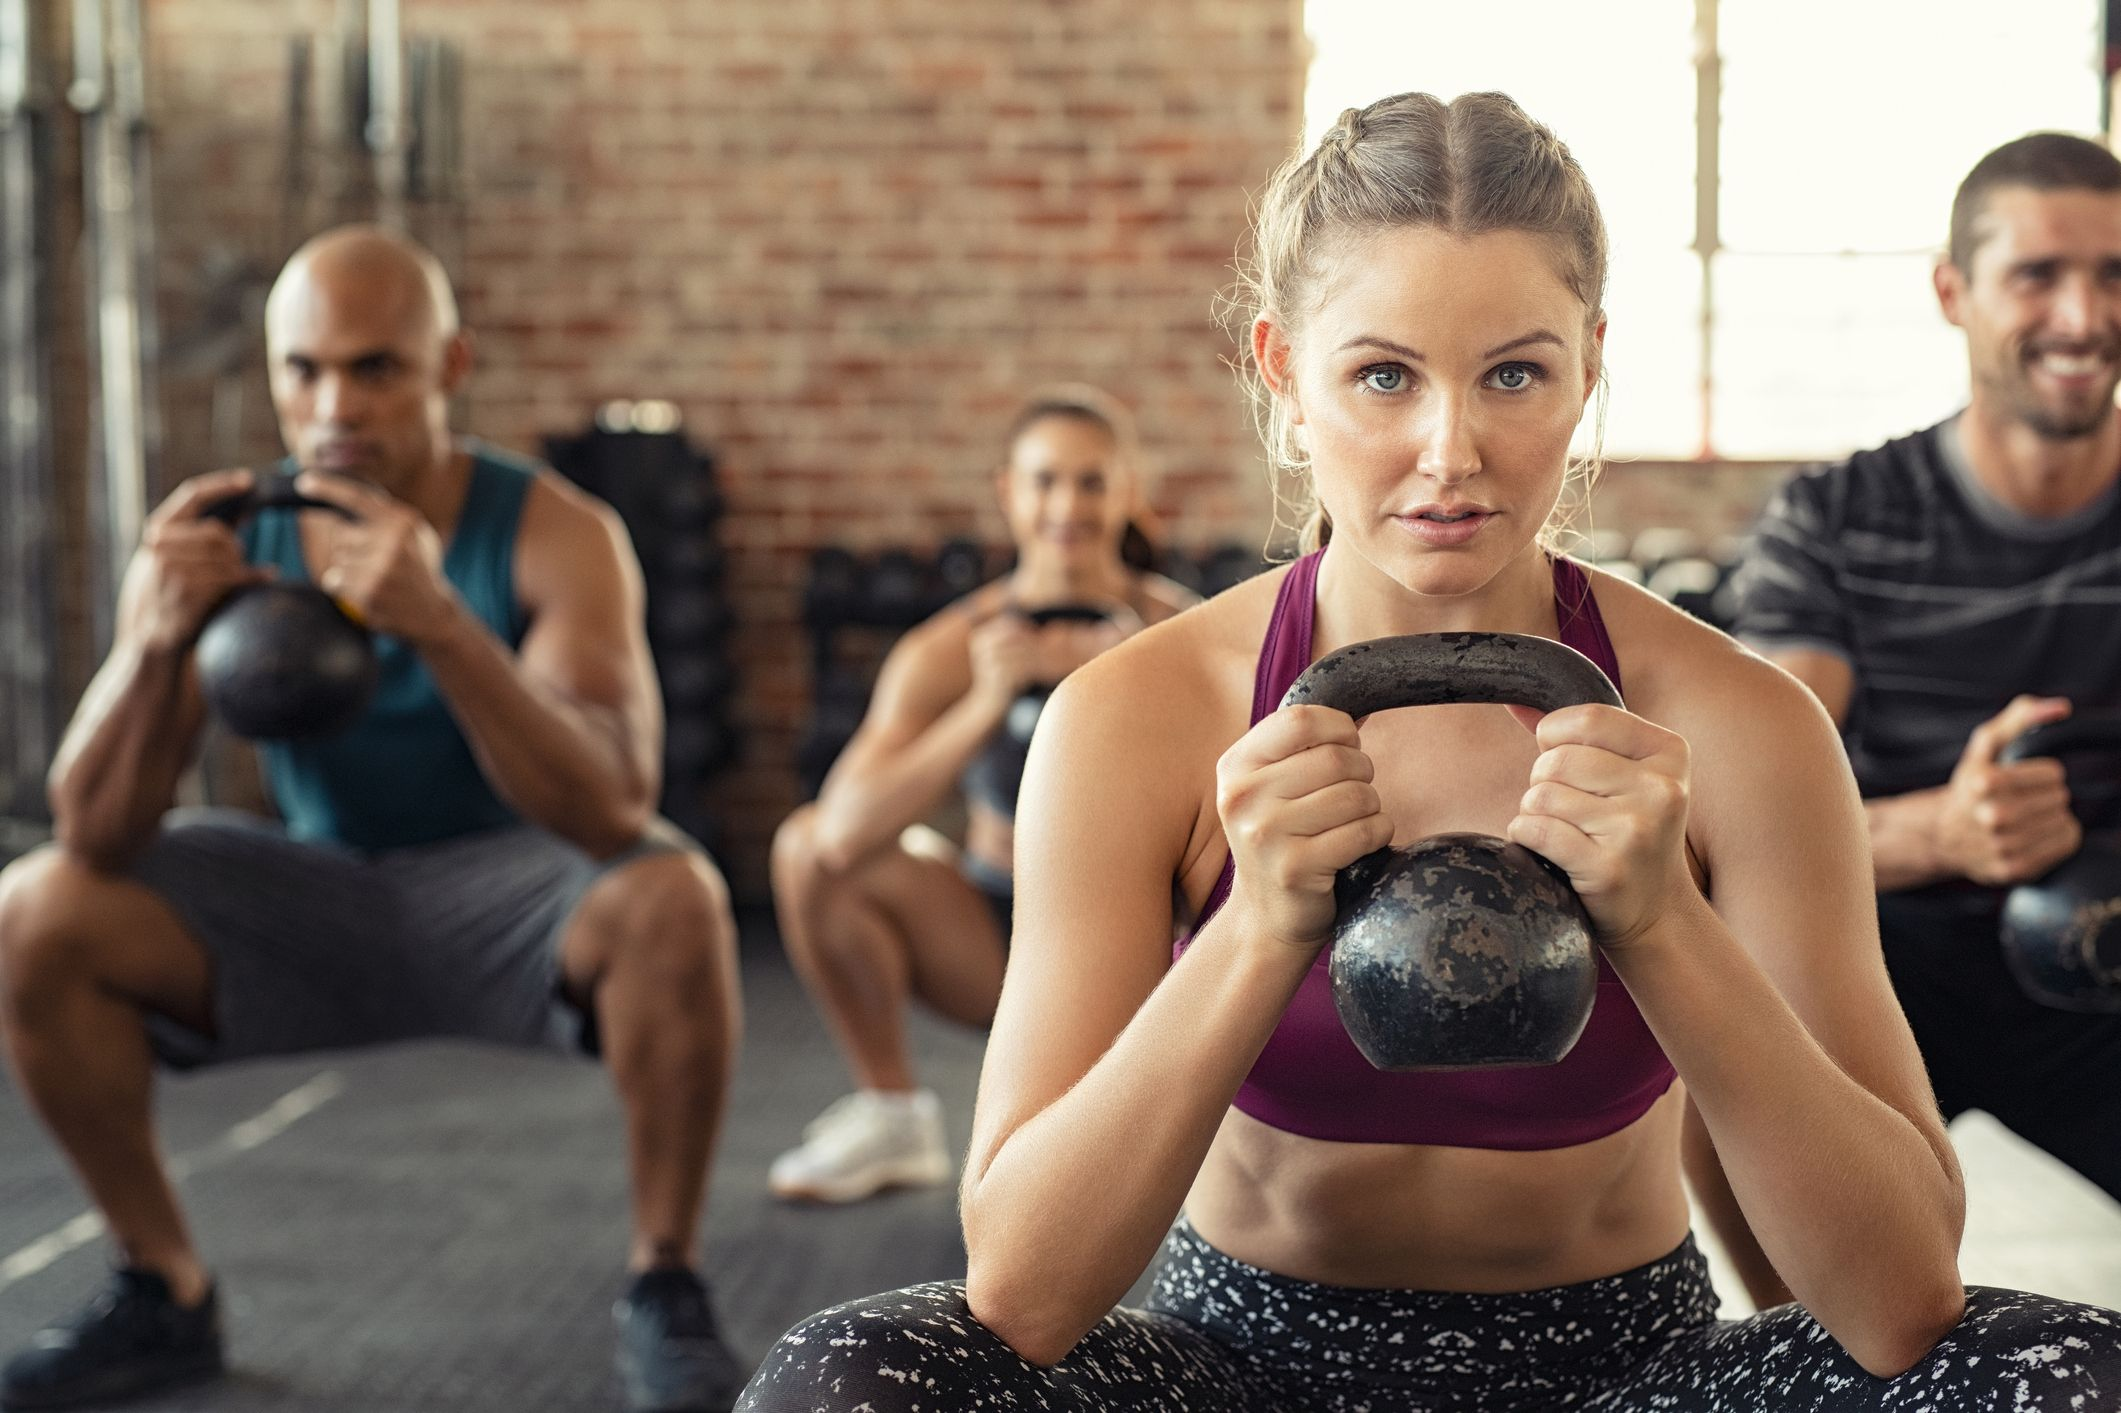 Cheap Gym Memberships to Help You Crush Your Goals on a Budget